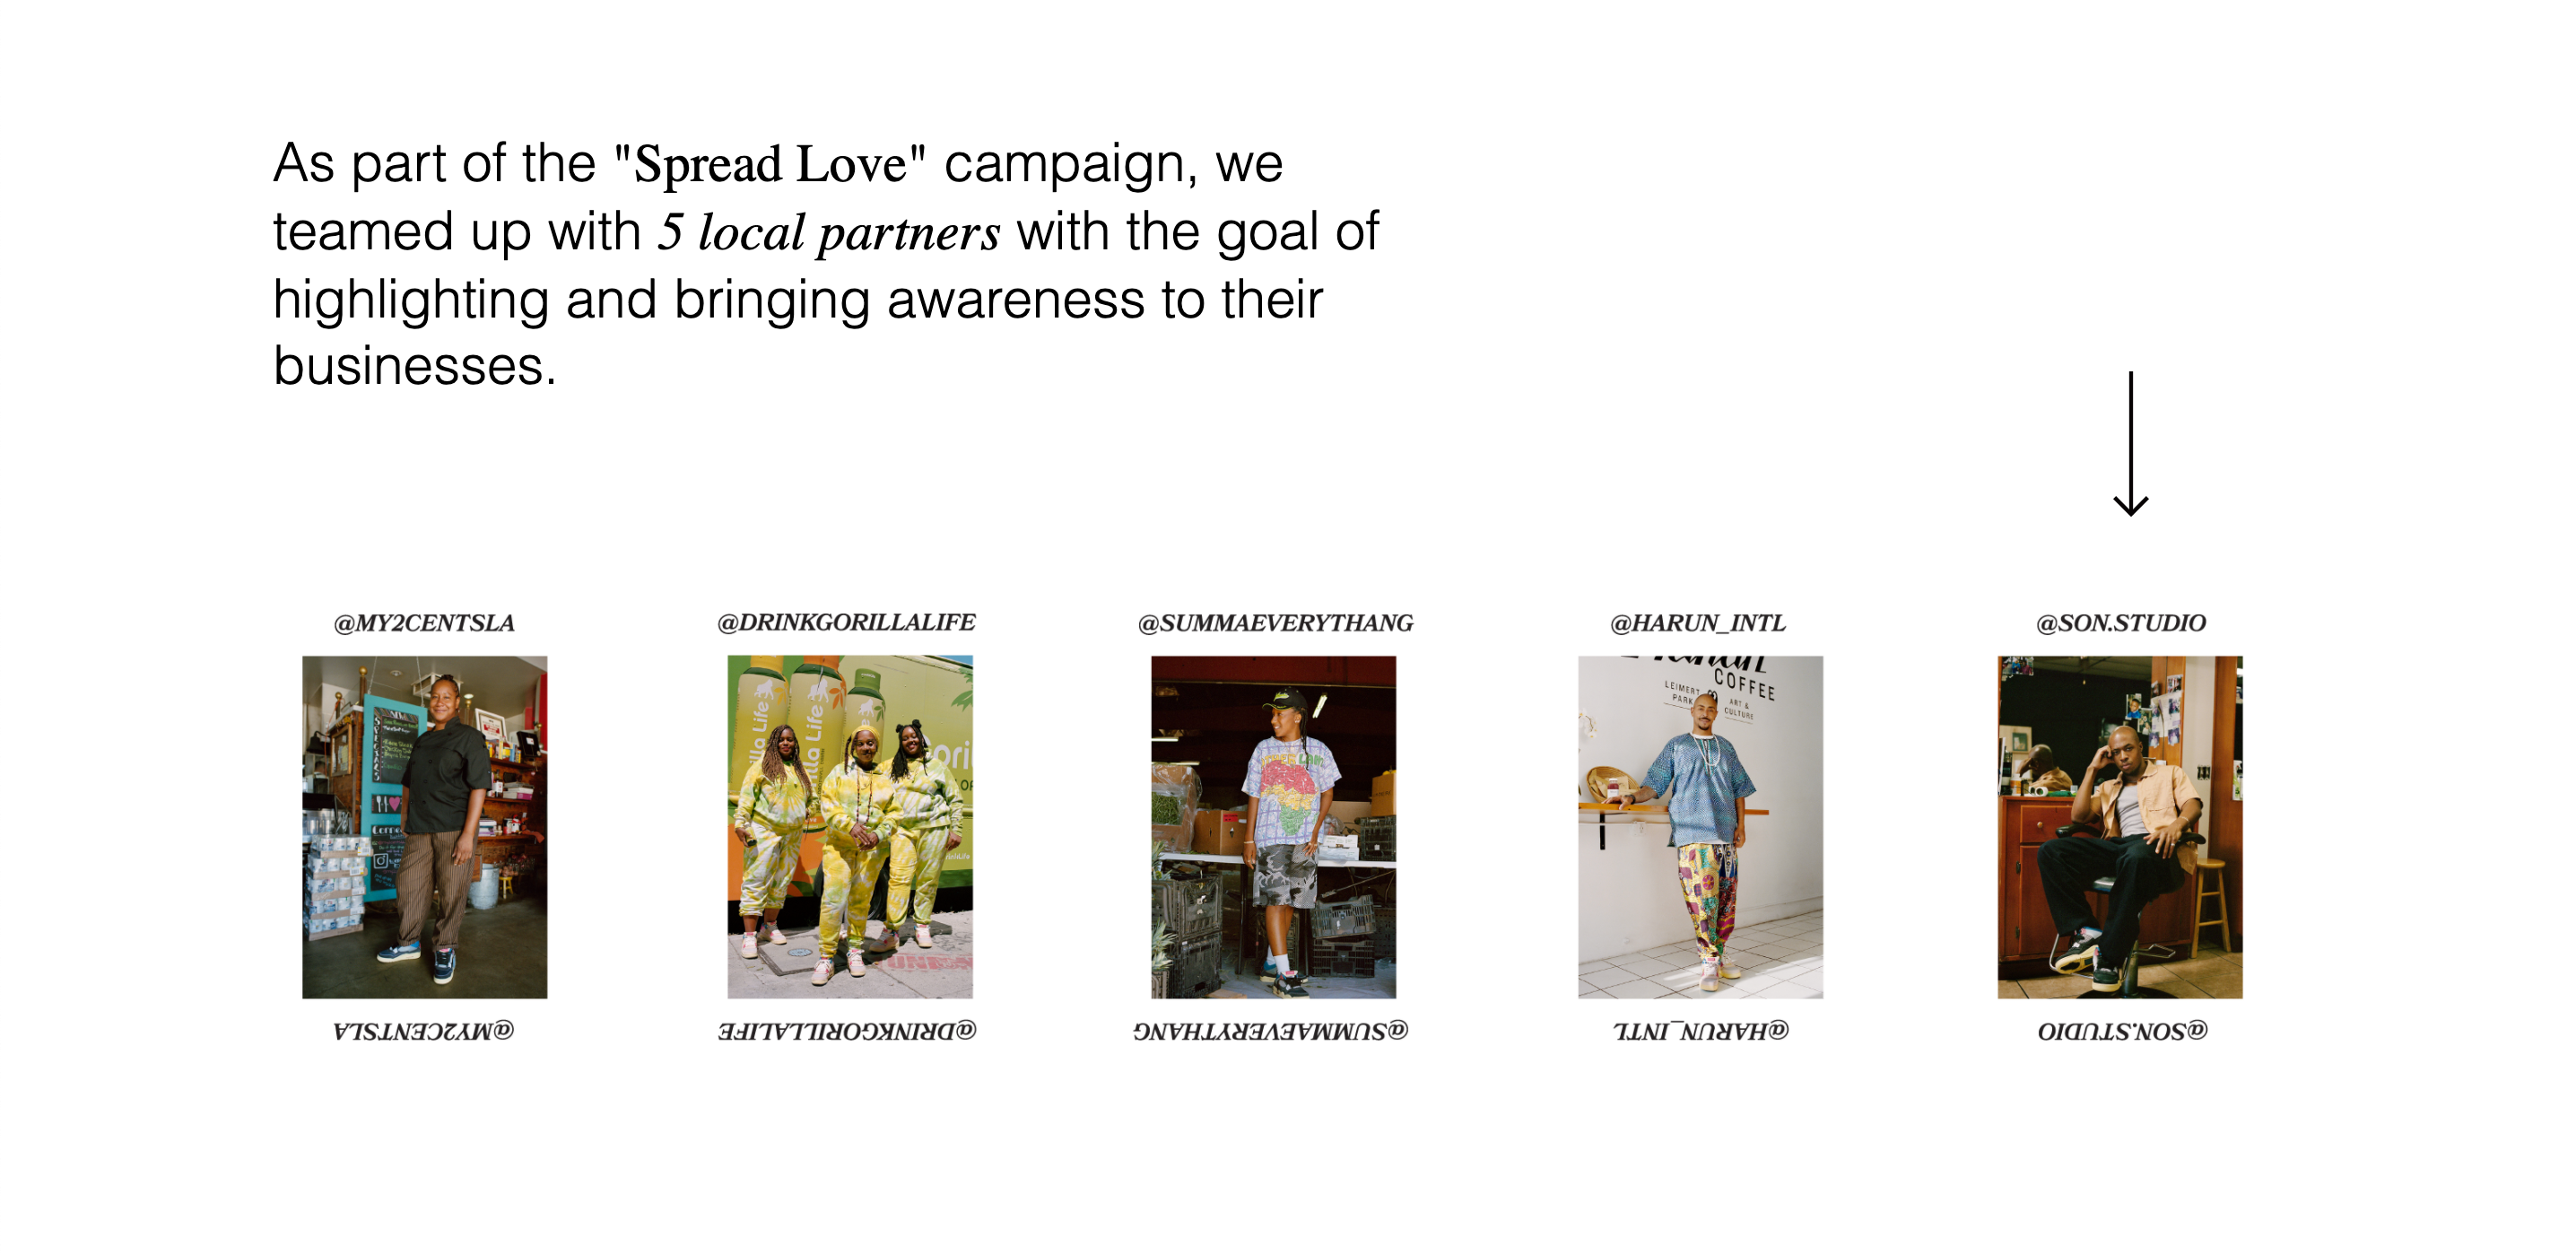 """As part of the """"Spread Love"""" campaign, we teamed up with 5 local partners with the goals of highlighting and bringing awareness to their businesses."""